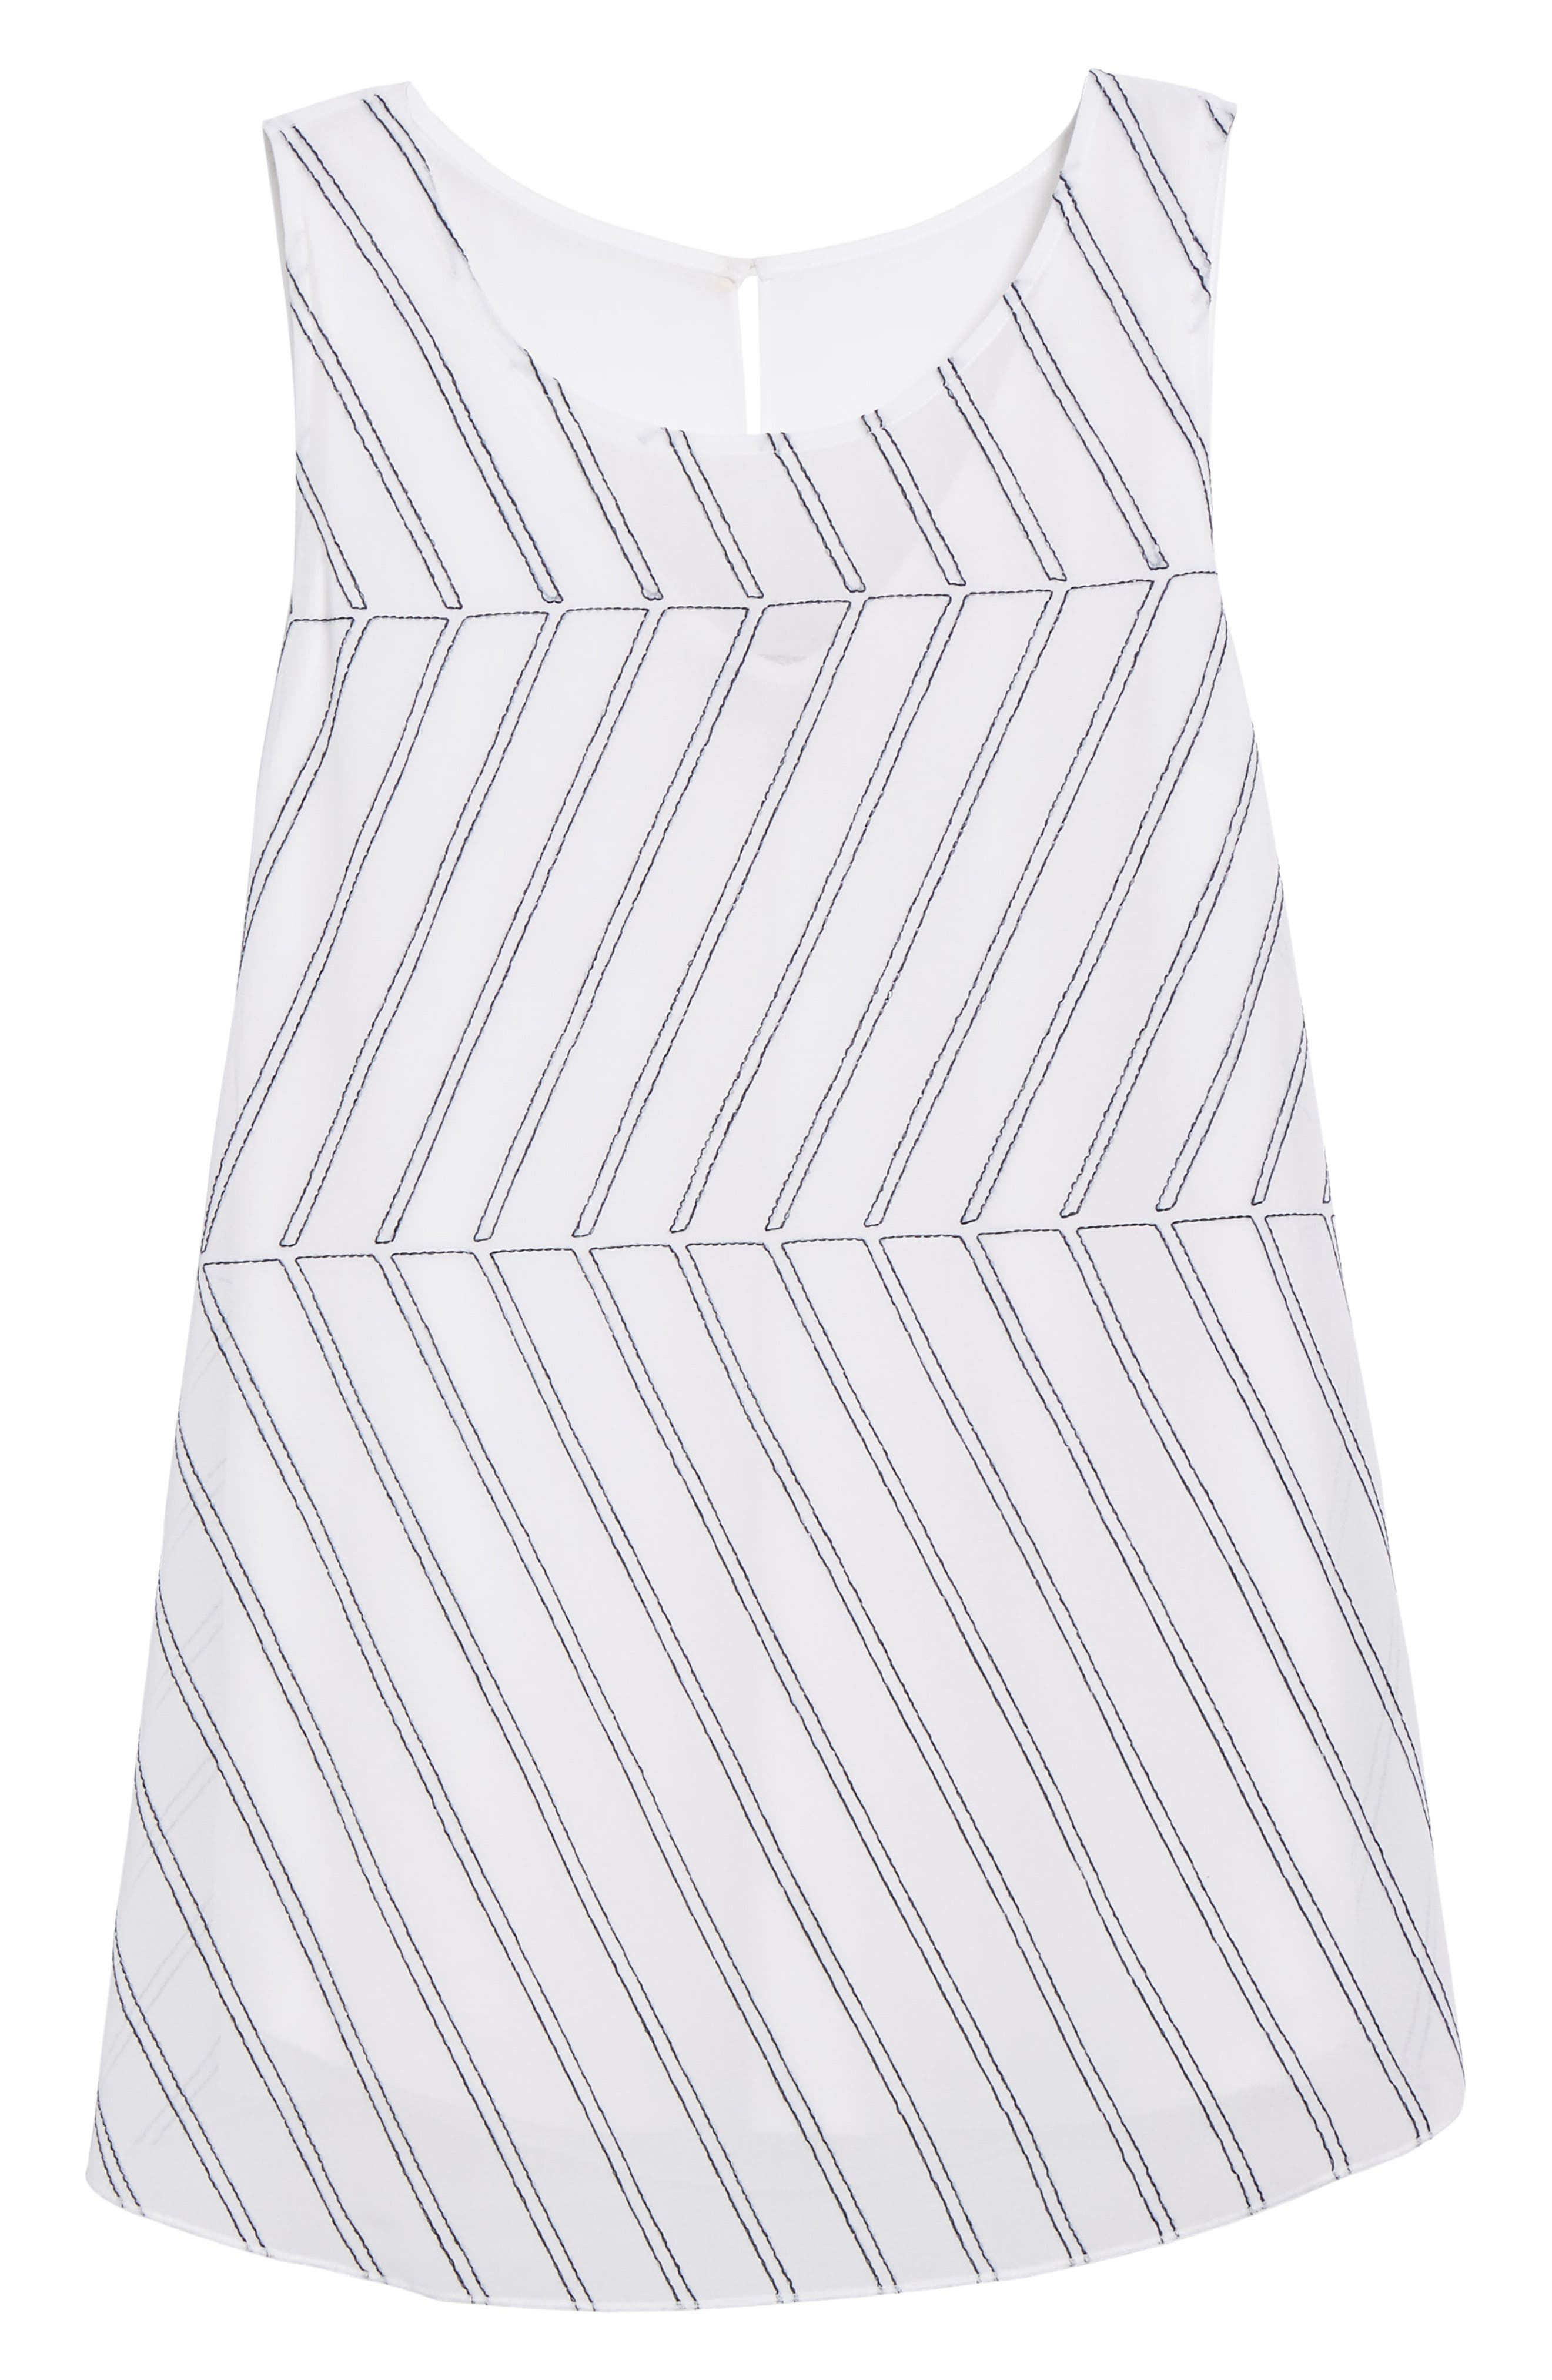 Heat Retreat Layered Tank,                             Alternate thumbnail 6, color,                             Paper White